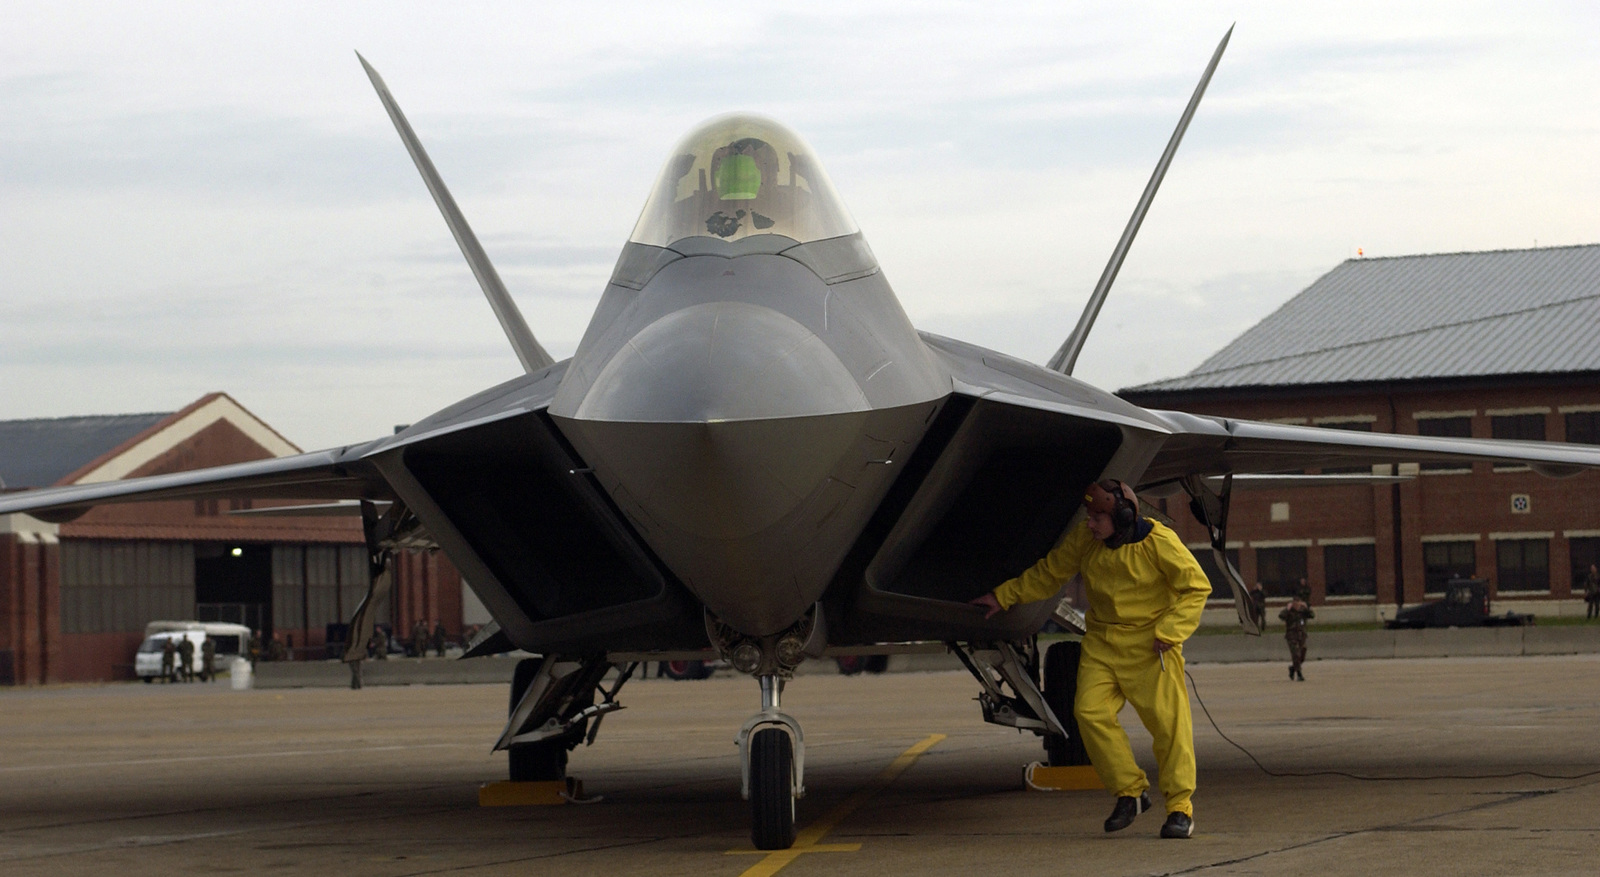 U.S. Air Force COL. Joe Lanni, Commander of the 412th Test Wing, Edwards Air Force Base, Calif., holds his position while maintenance crew of the 27th Fighter Squadron safe up his F/A-22 Raptor fighter aircraft at Langley Air Force Base (AFB), Va., on Jan. 7, 2005. COL. Lanni landed the first FA-22 Raptor officially assigned to the 1ST Fighter Wing here at Langley AFB. (USAF PHOTO by STAFF SGT. Samuel Roger) (Released)